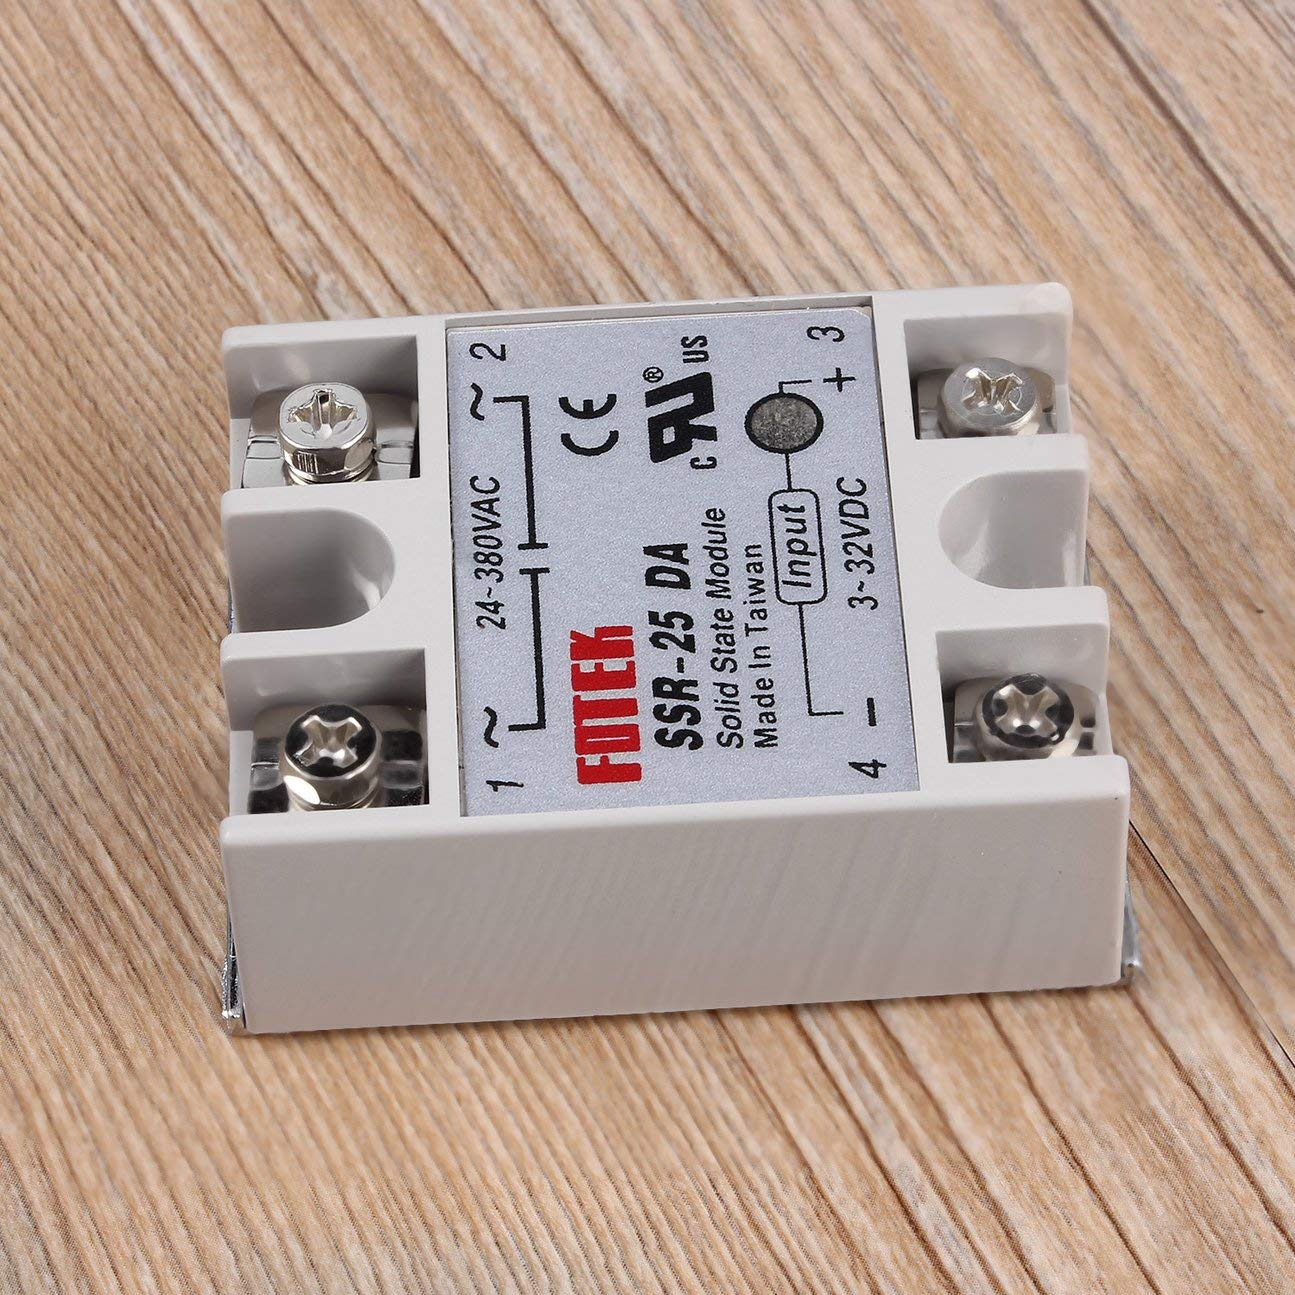 Solid State Relay SSR-25DA 25A Module 3-32V TO 24-380V AC SSR 25DA Relay Solid State Plastic Cover Case COLOR:White